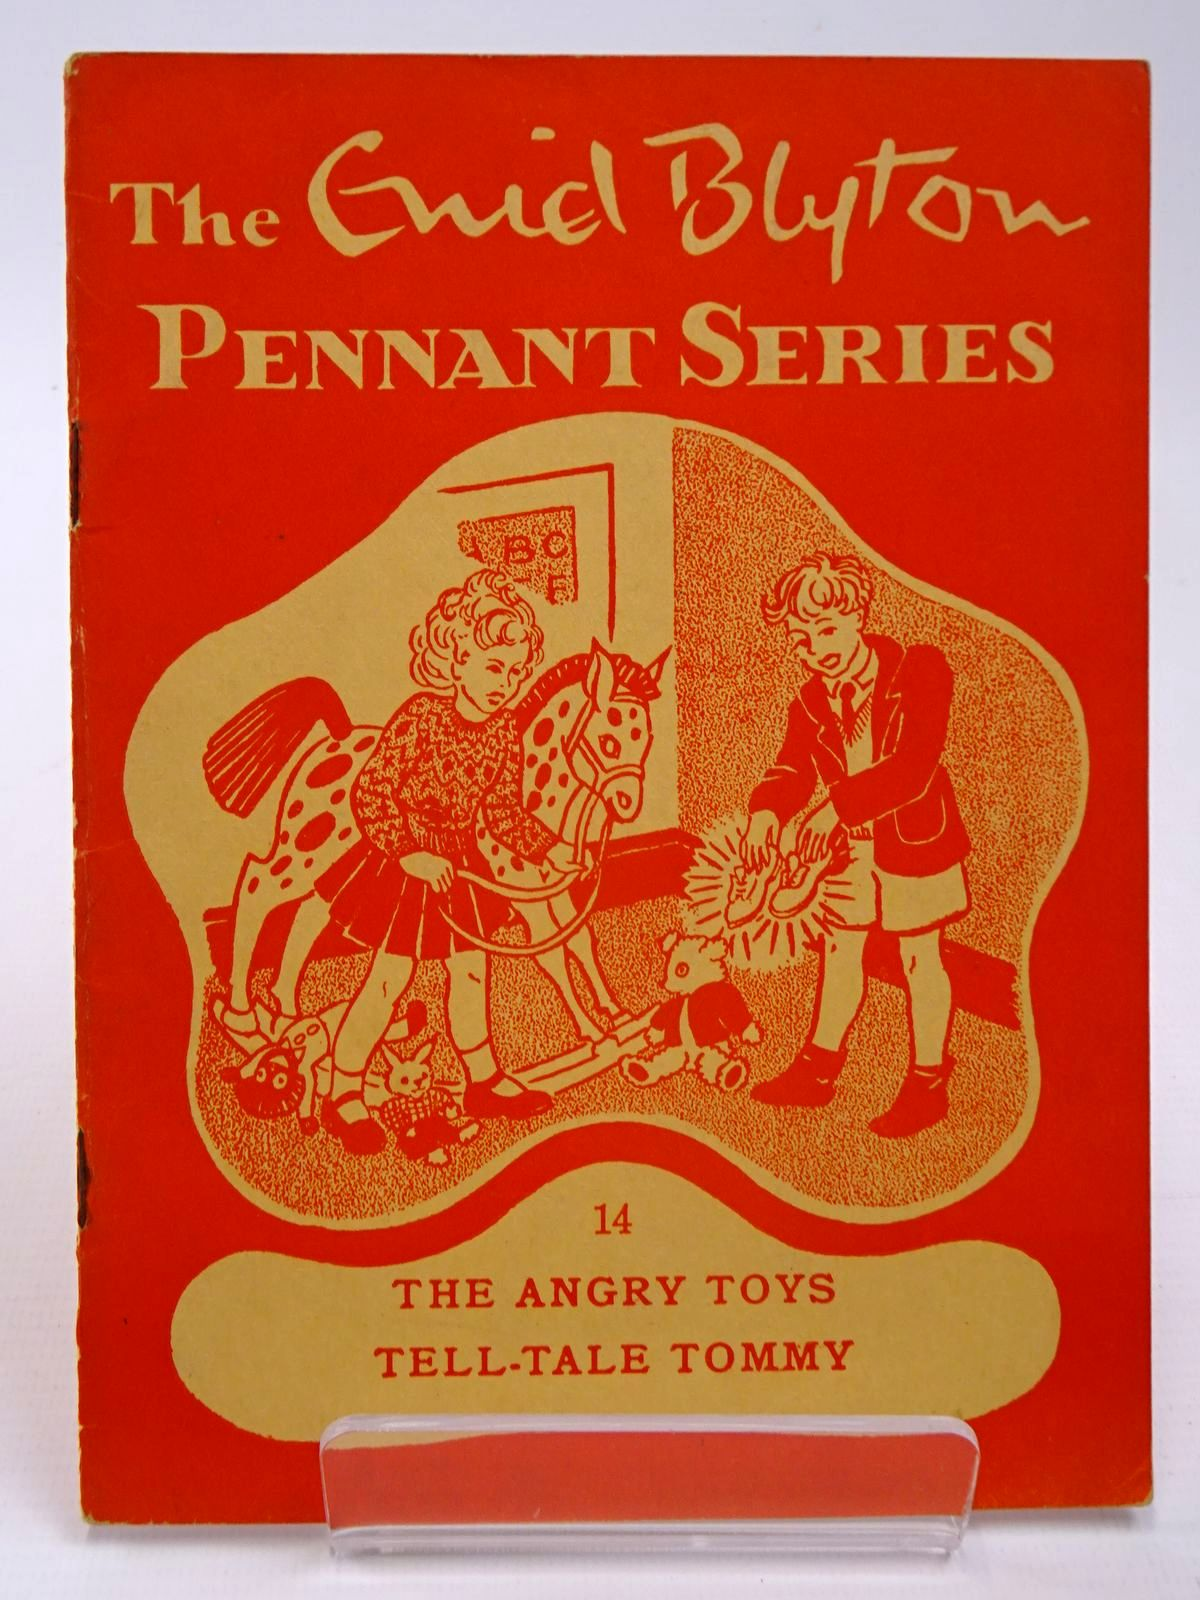 Photo of THE ENID BLYTON PENNANT SERIES No. 14 THE ANGRY TOYS / TELL-TALE TOMMY written by Blyton, Enid illustrated by Soper, Eileen Main, Jean published by Macmillan & Co. Ltd. (STOCK CODE: 2130520)  for sale by Stella & Rose's Books